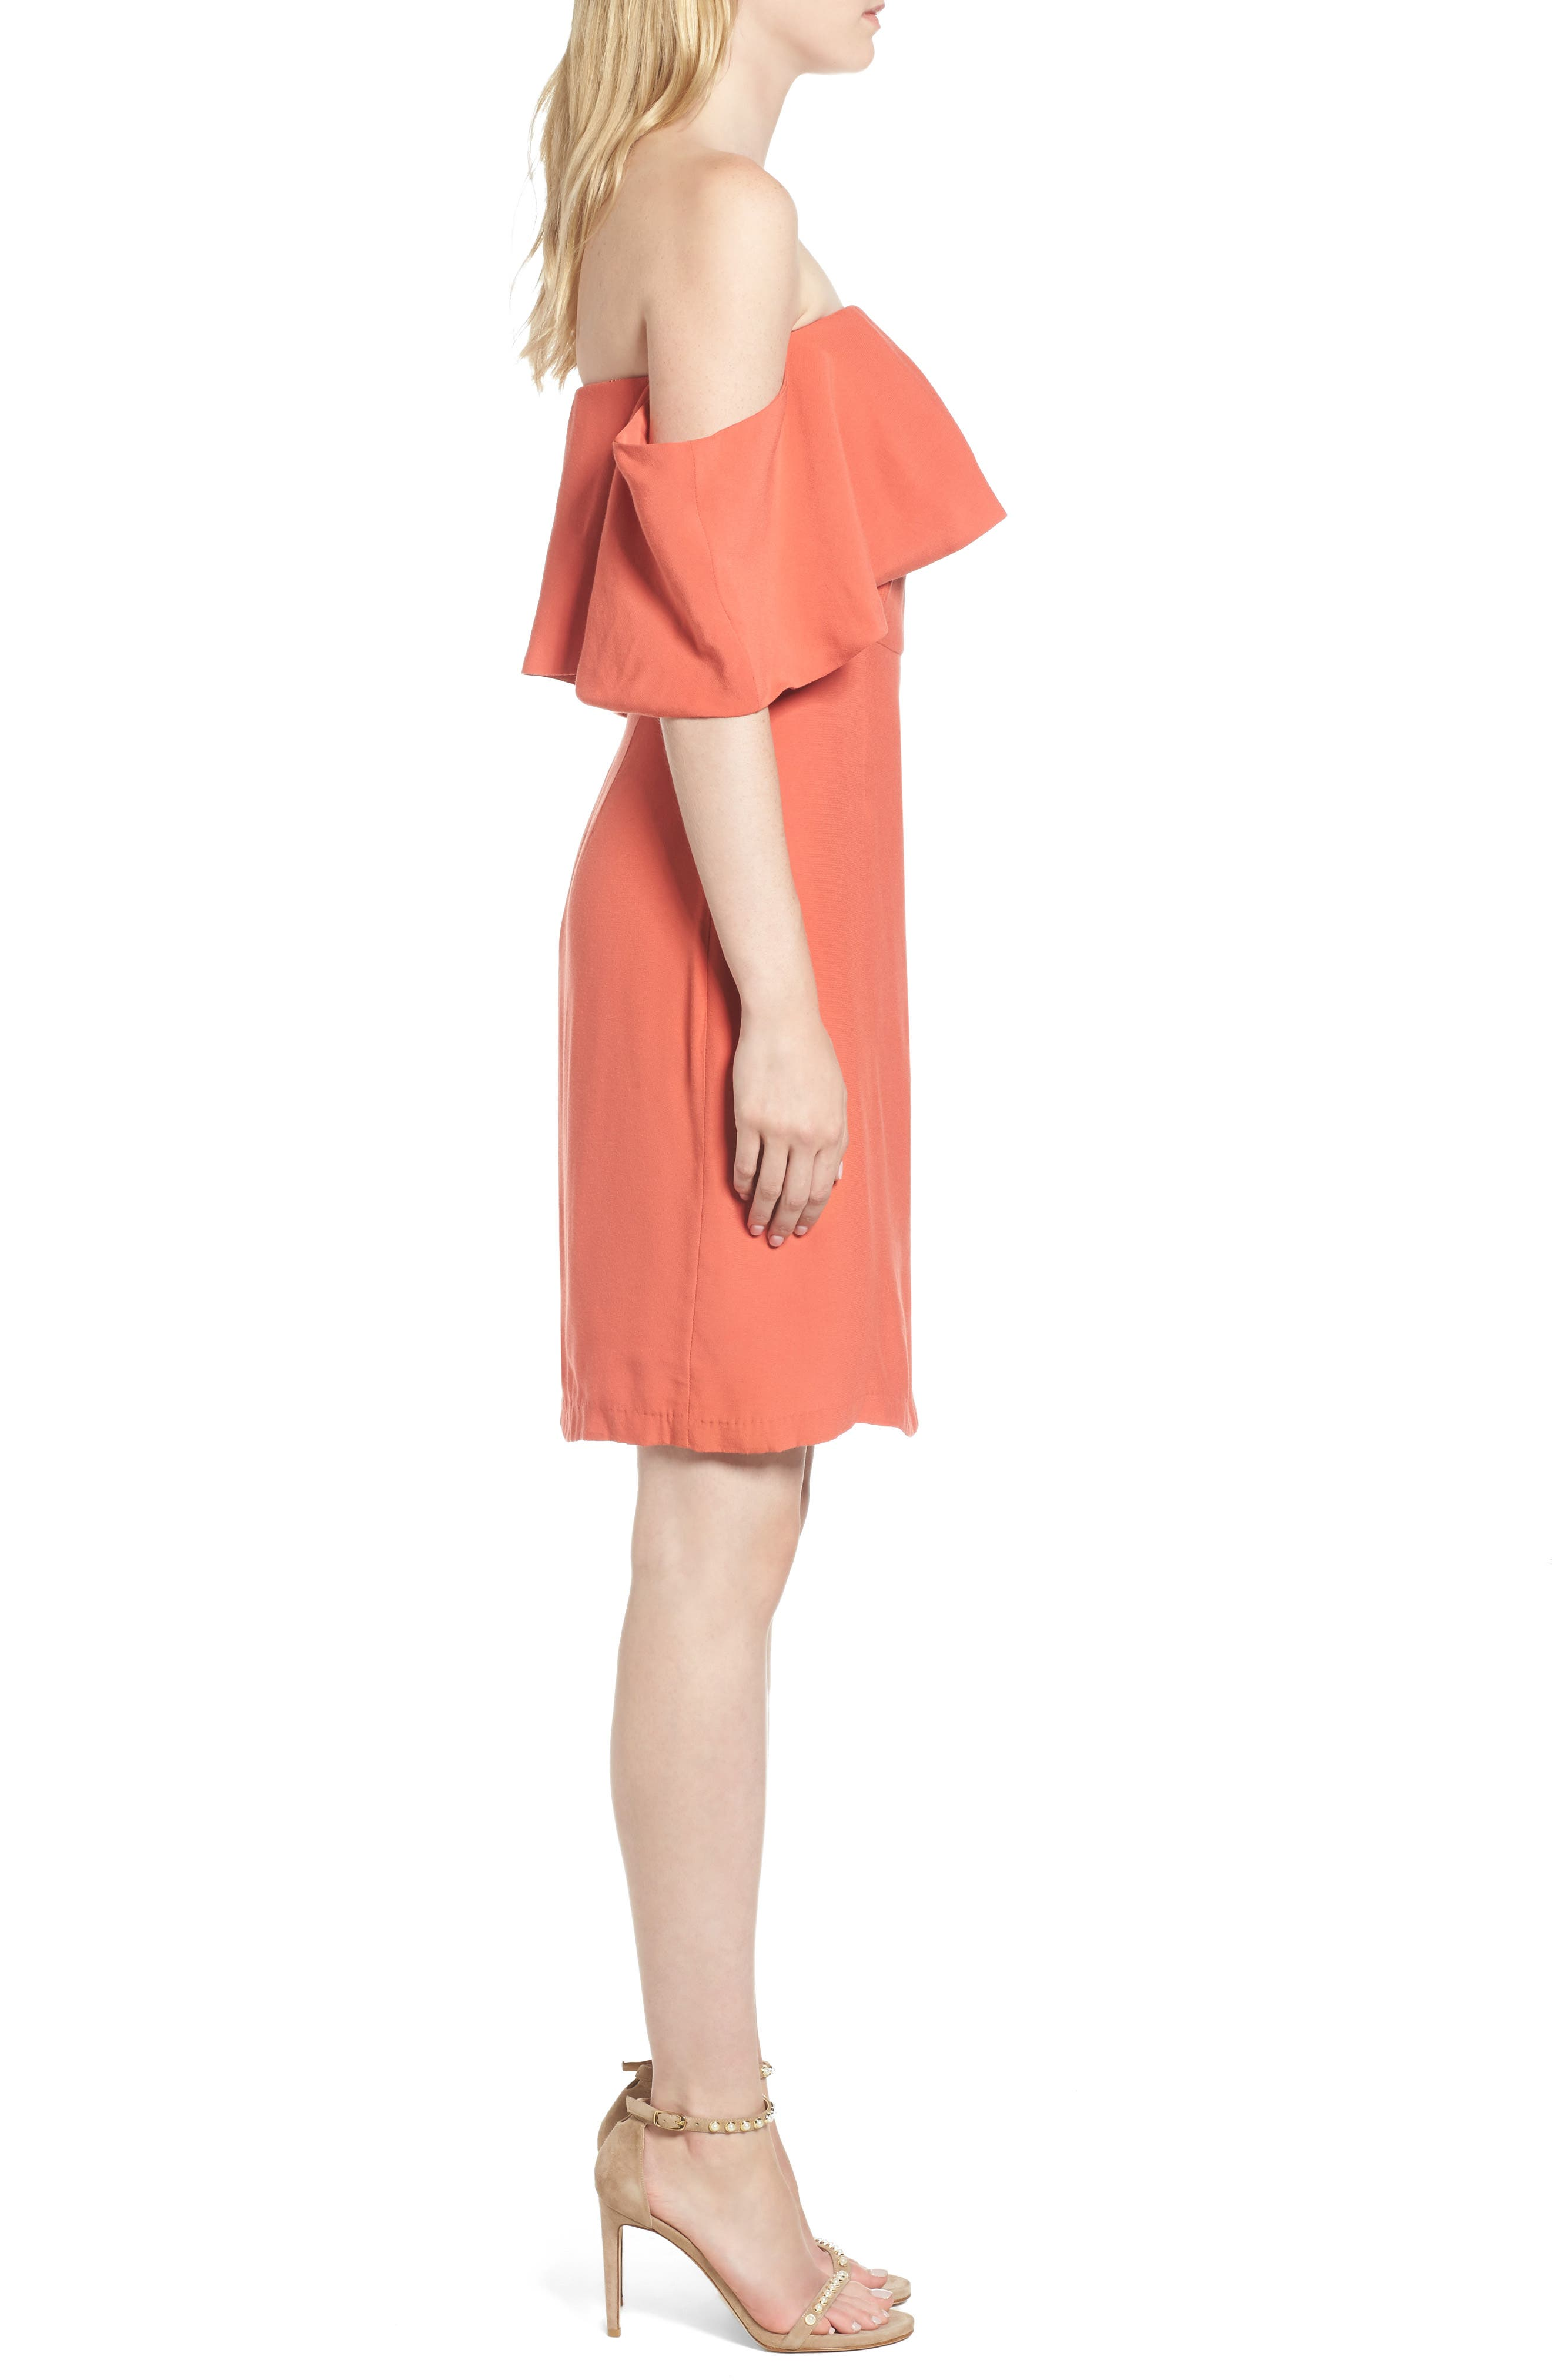 Rudy Off the Shoulder Shift Dress,                             Alternate thumbnail 3, color,                             Persimmon Red